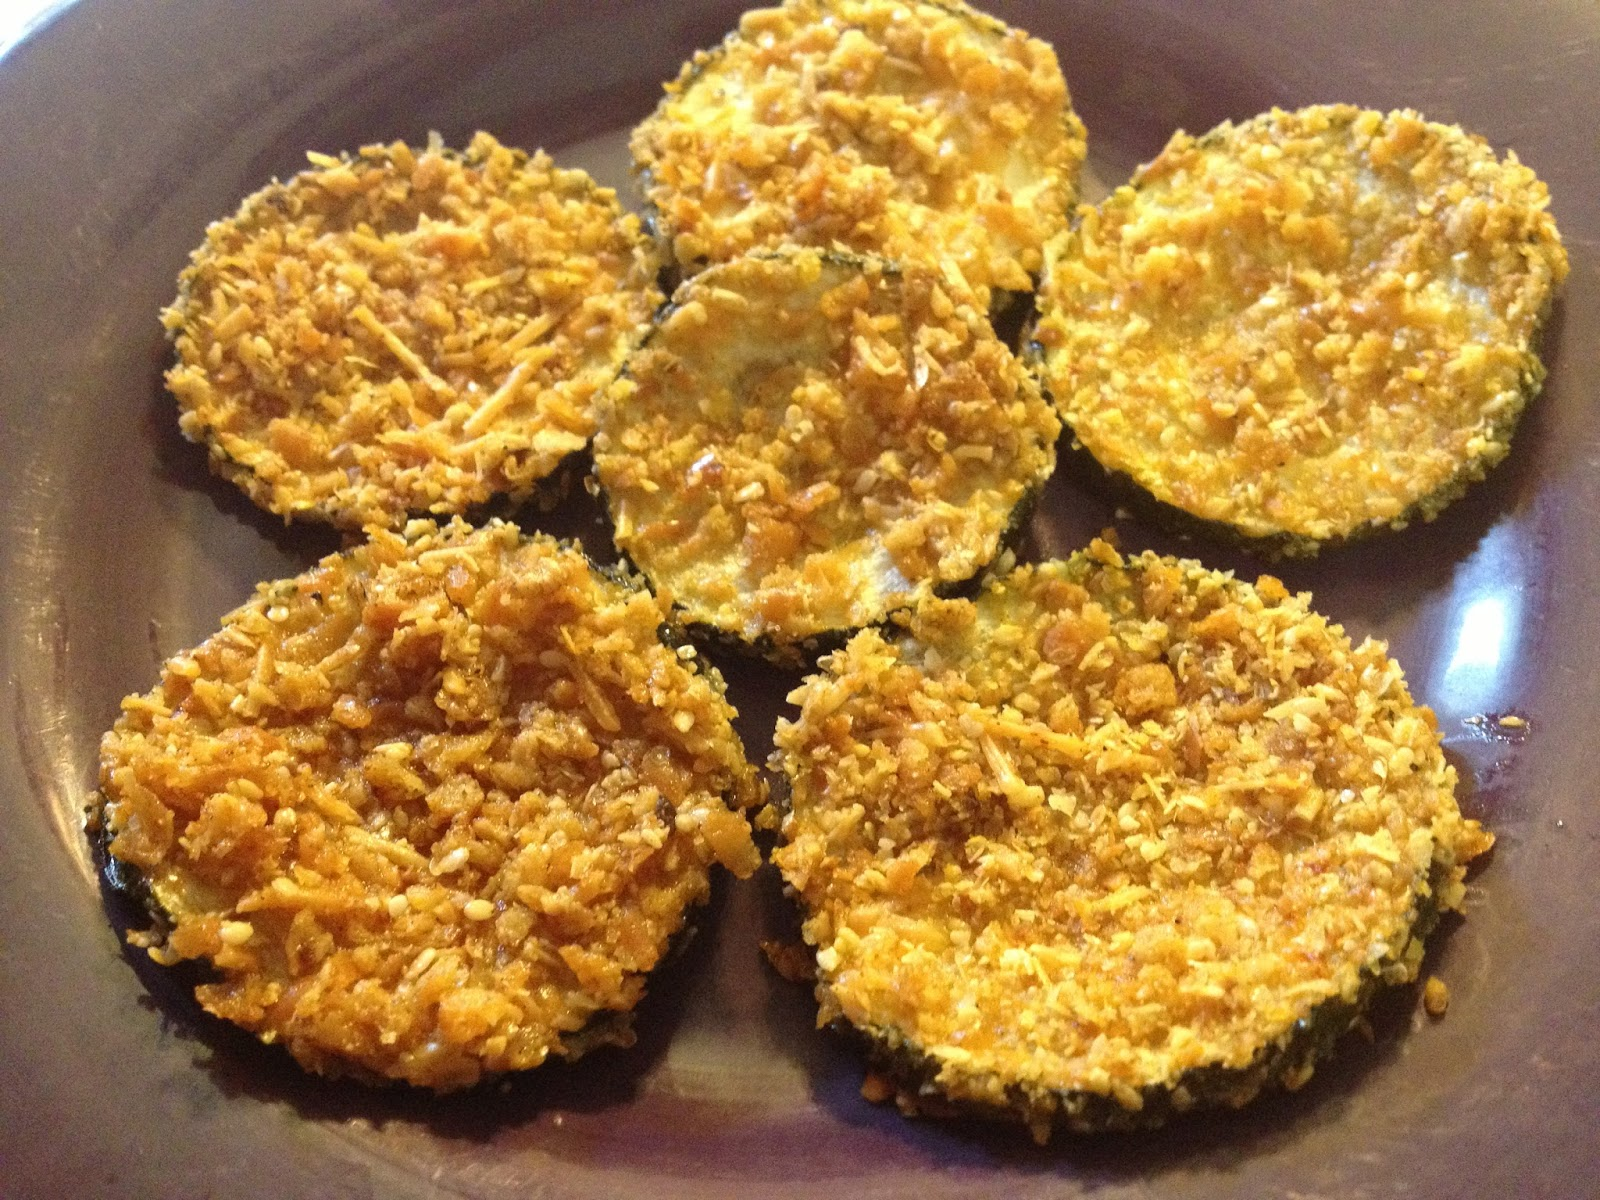 Parmesan Encrusted Zucchini Recipes — Dishmaps